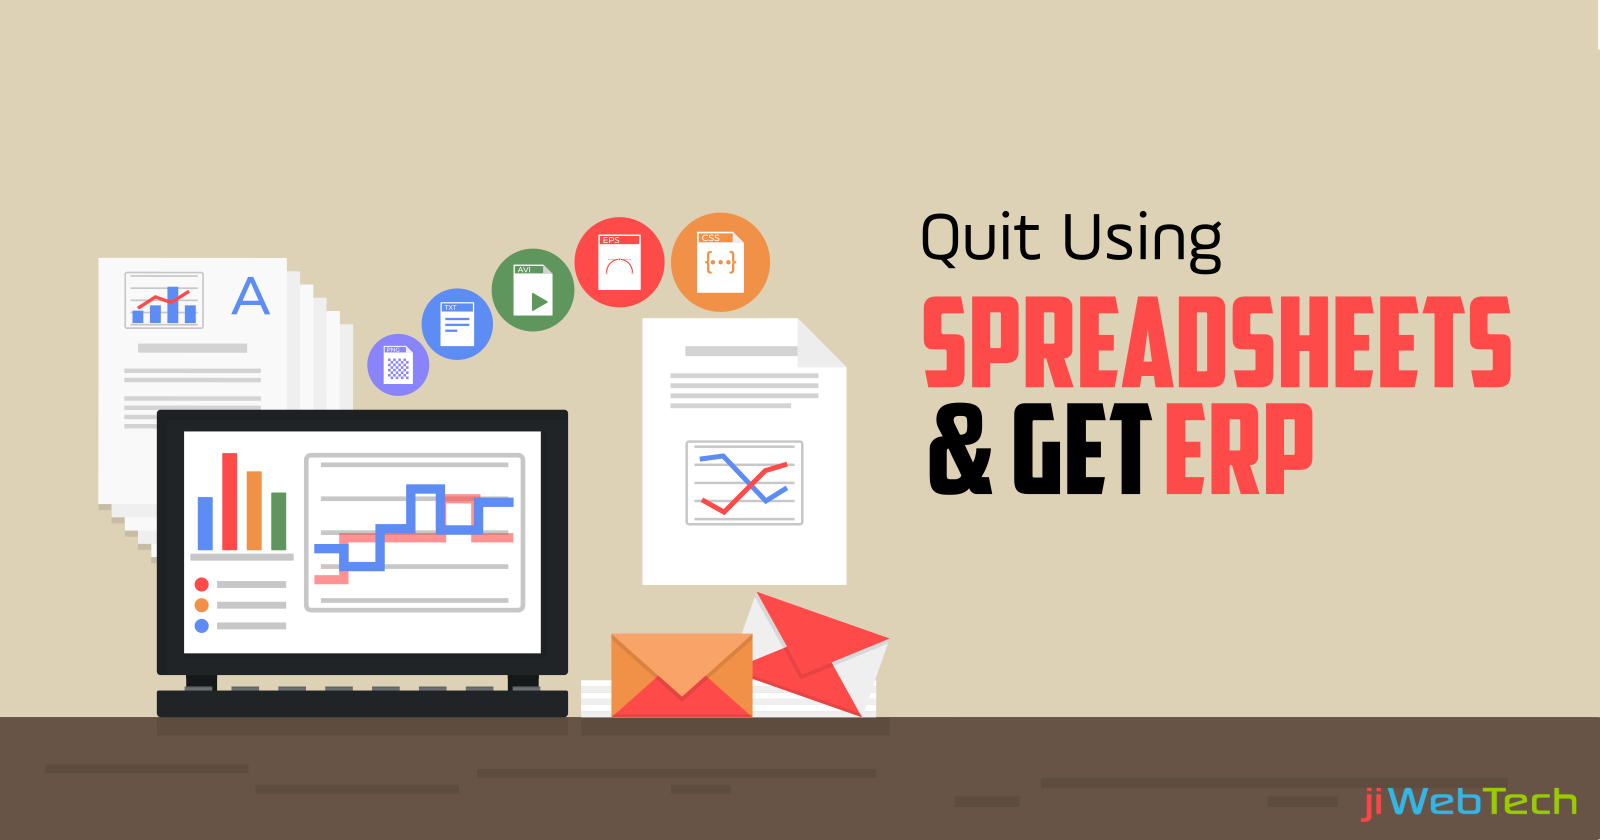 Signs to Quit Using Spreadsheets and Get an ERP!